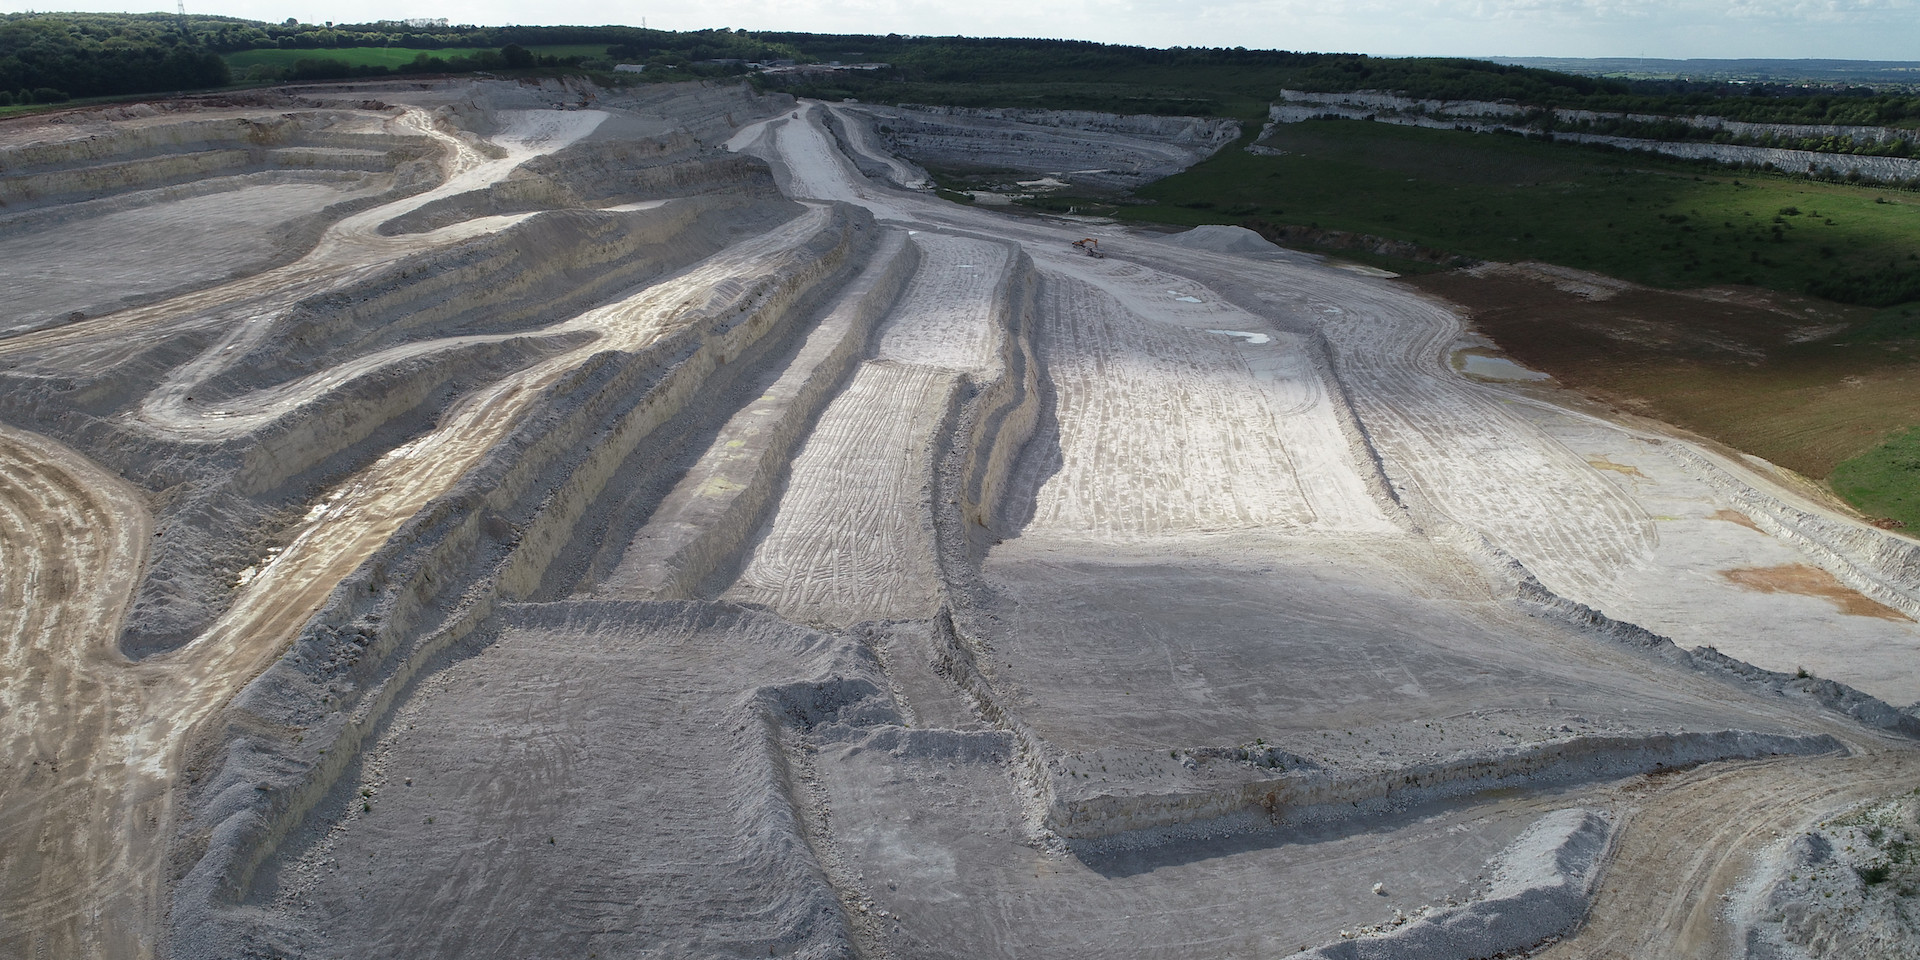 Aerial photo of deep excavations in Quarry